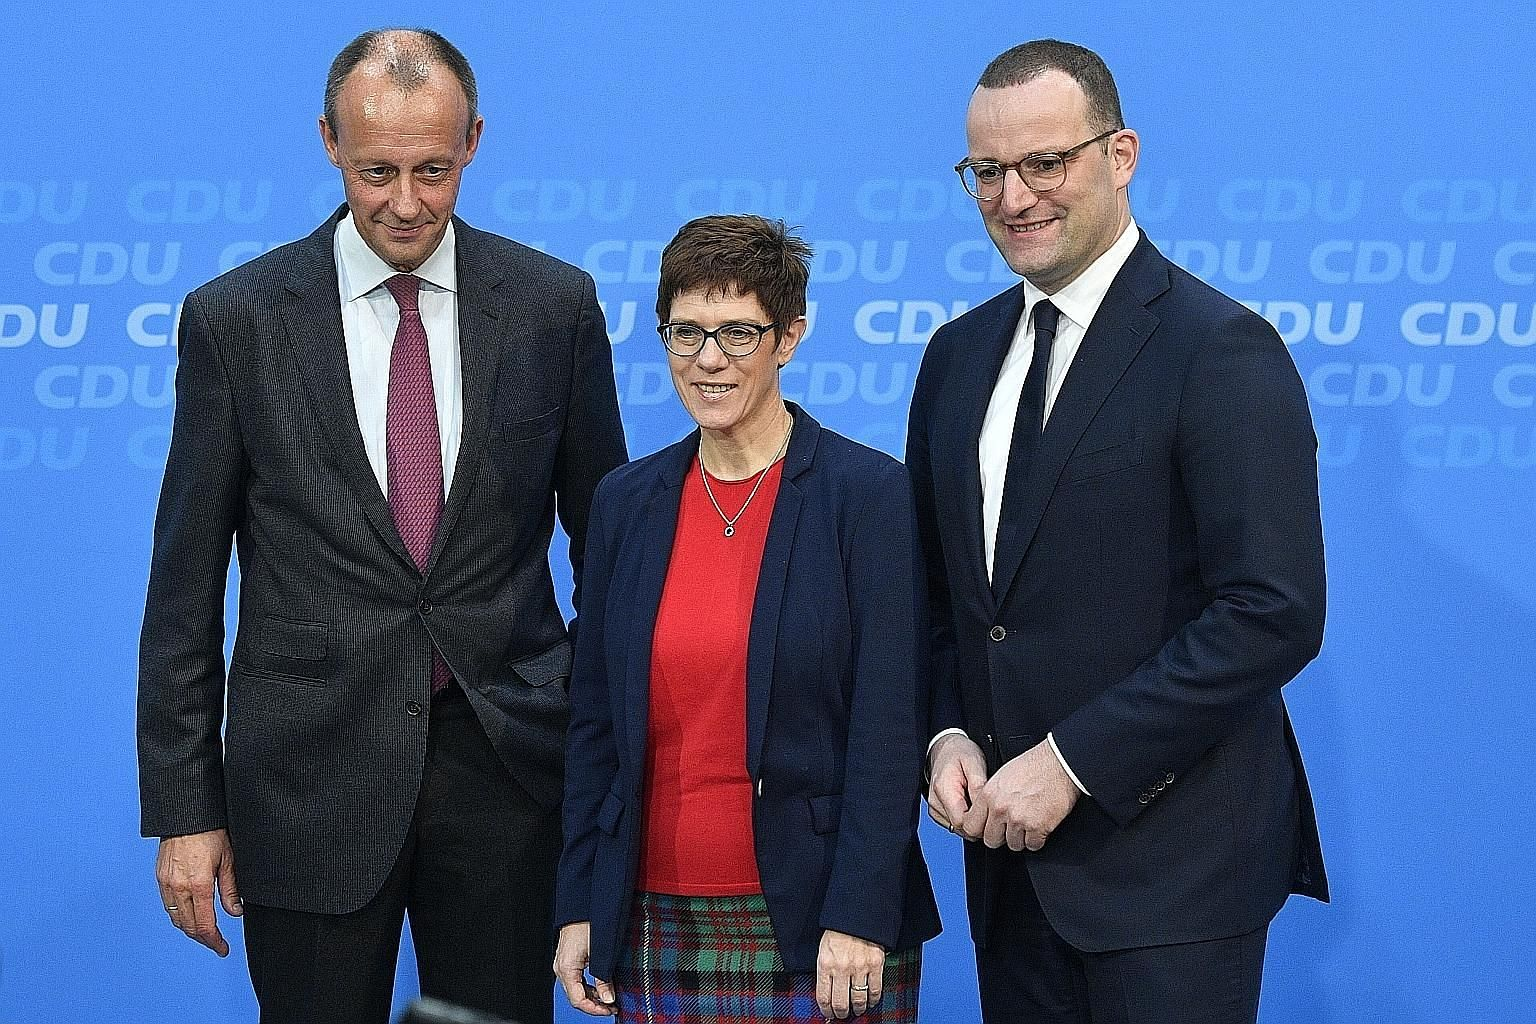 Vying for the Christian Democratic Union party's leadership are lawyer Friedrich Merz (left), CDU secretary-general Annegret Kramp-Karrenbauer and Health Minister Jens Spahn.